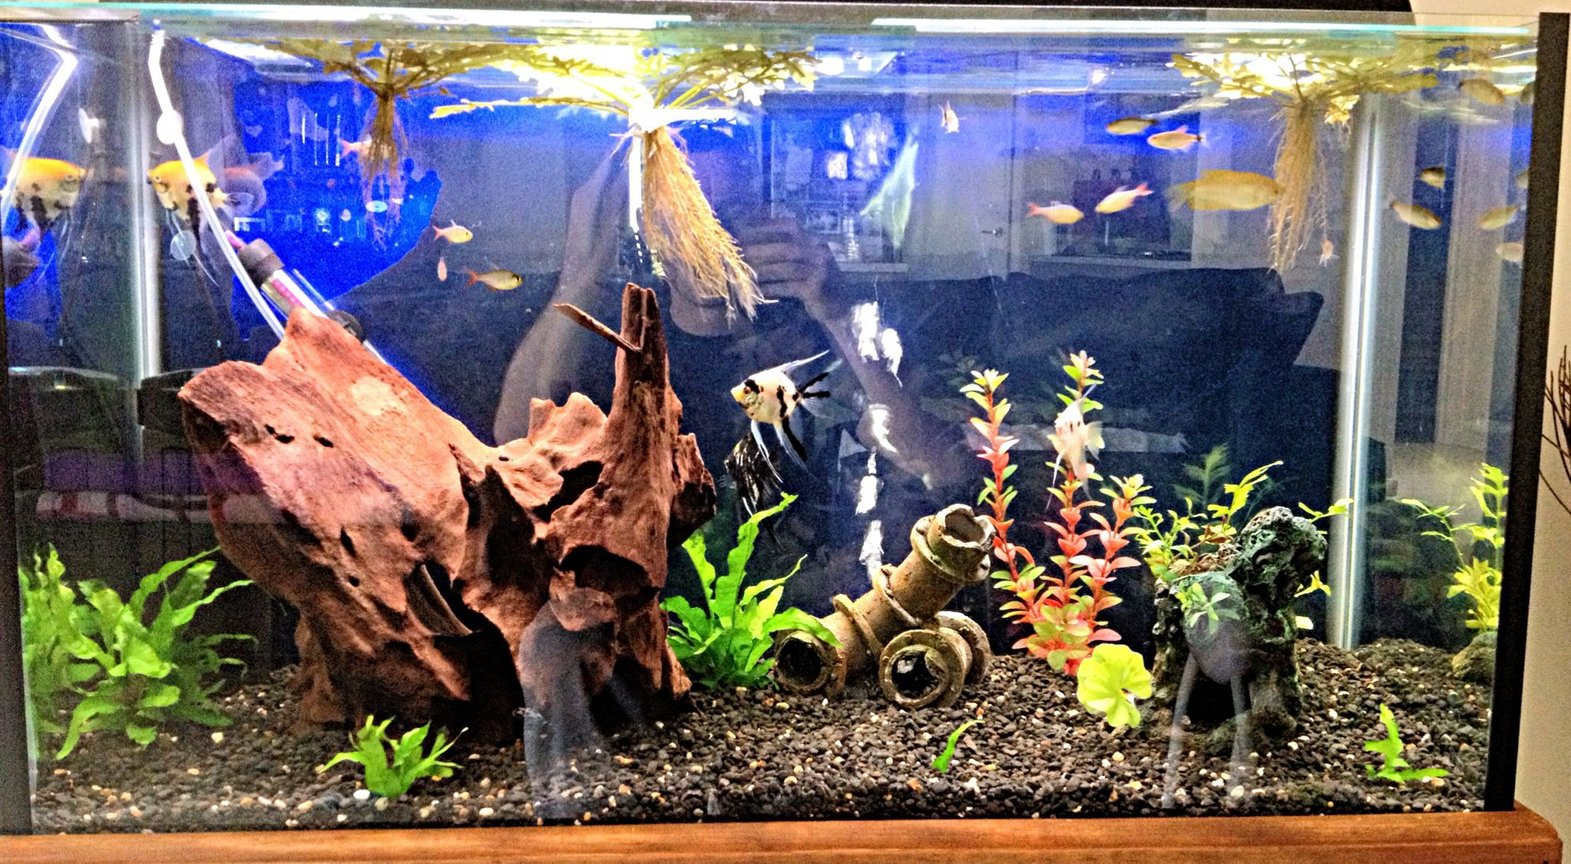 45 gallons freshwater fish tank (mostly fish and non-living decorations) - 3 foot community tank with angels, gouramis, red eye tetras, red blue columbian tetras & bristlenose catfish